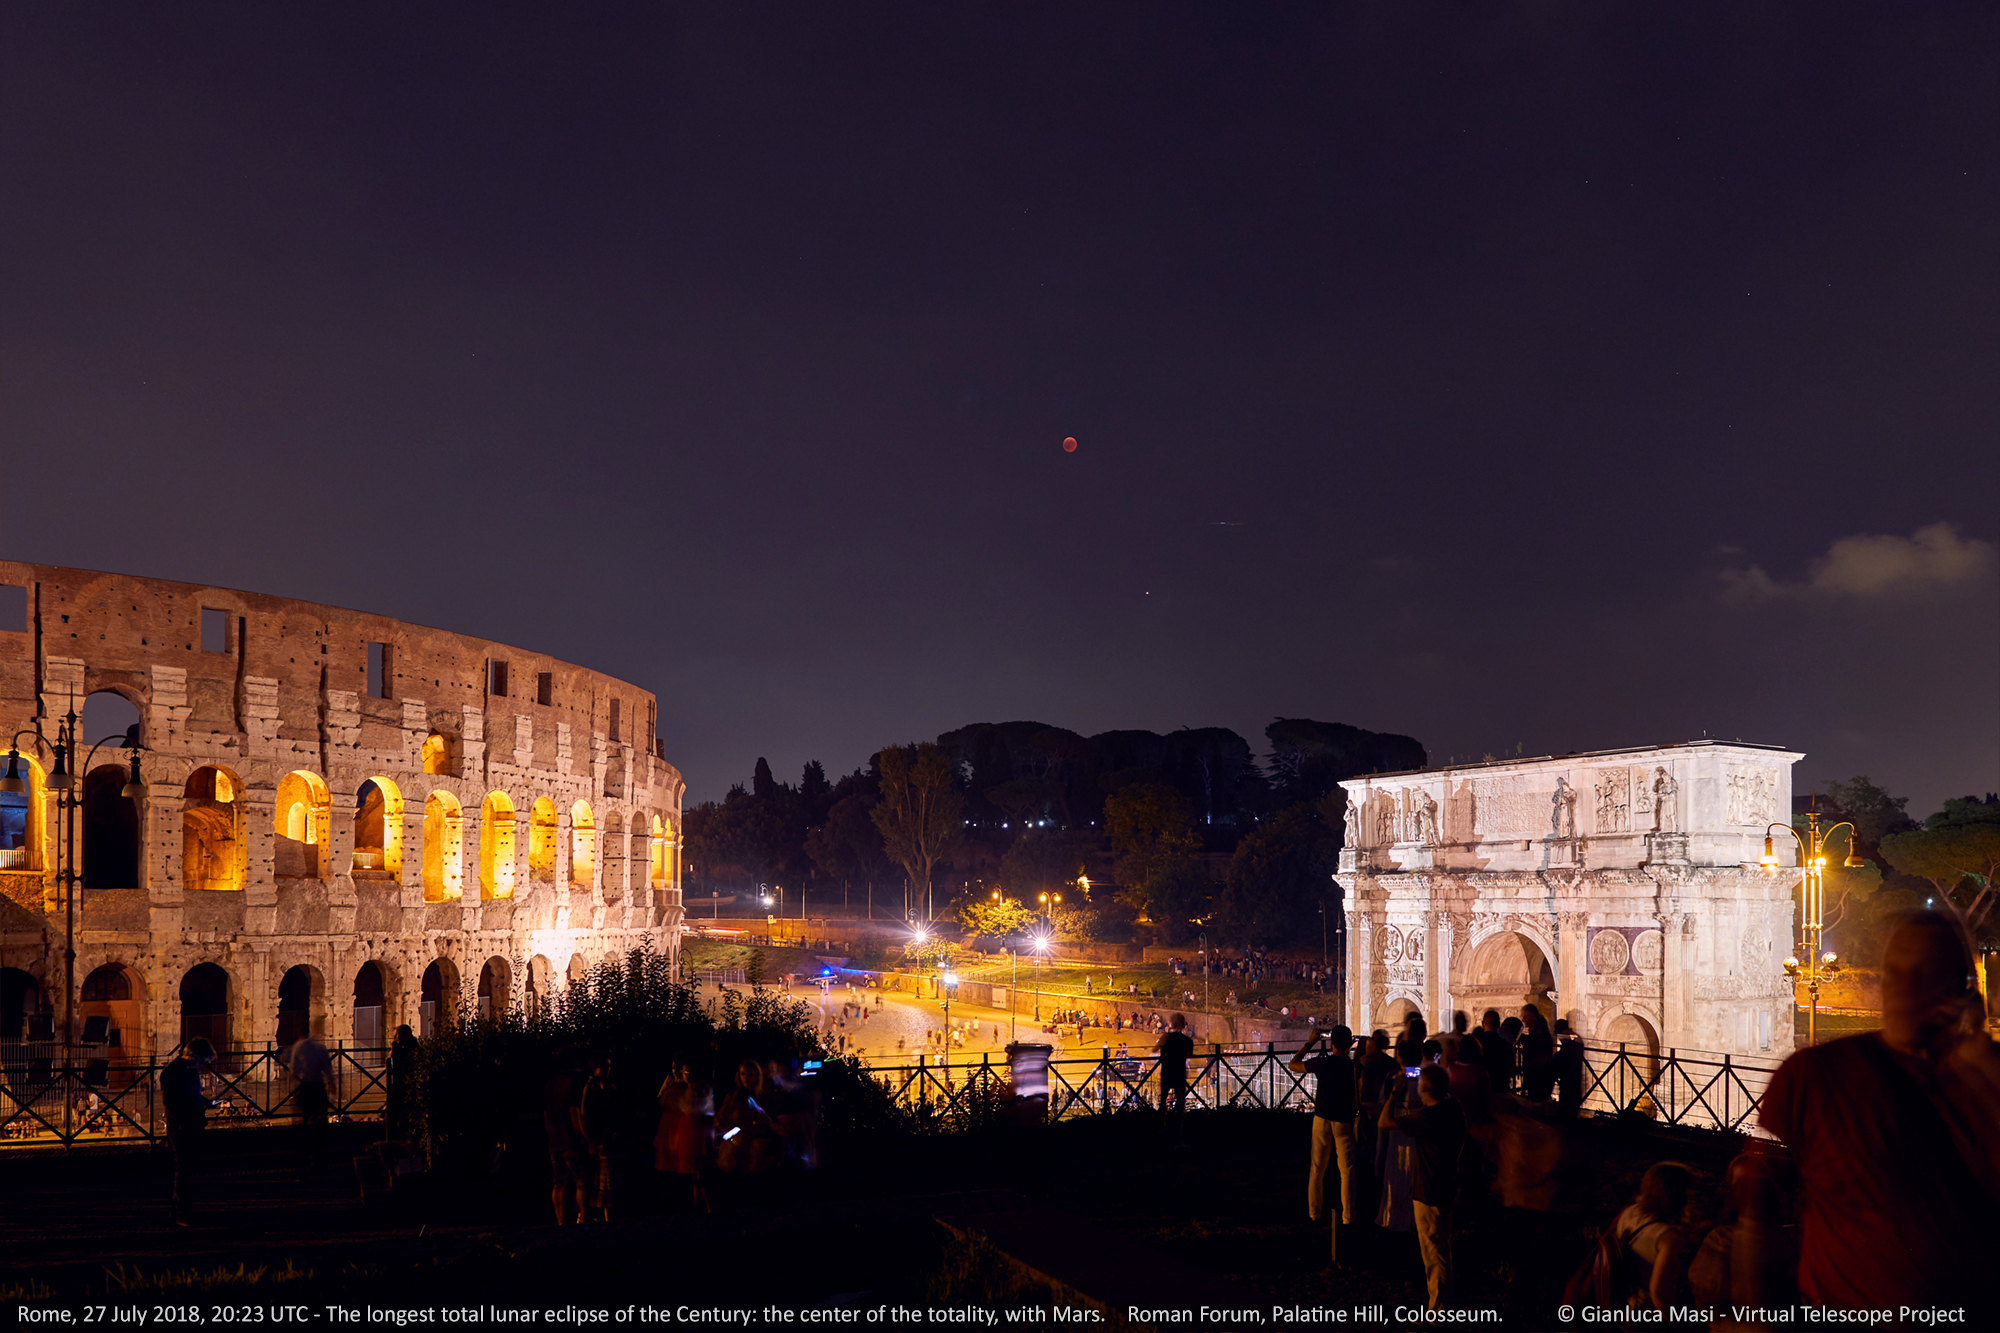 At the center of totality, the eclipsed Moon and planet Mars offered a simply unforgettable experience